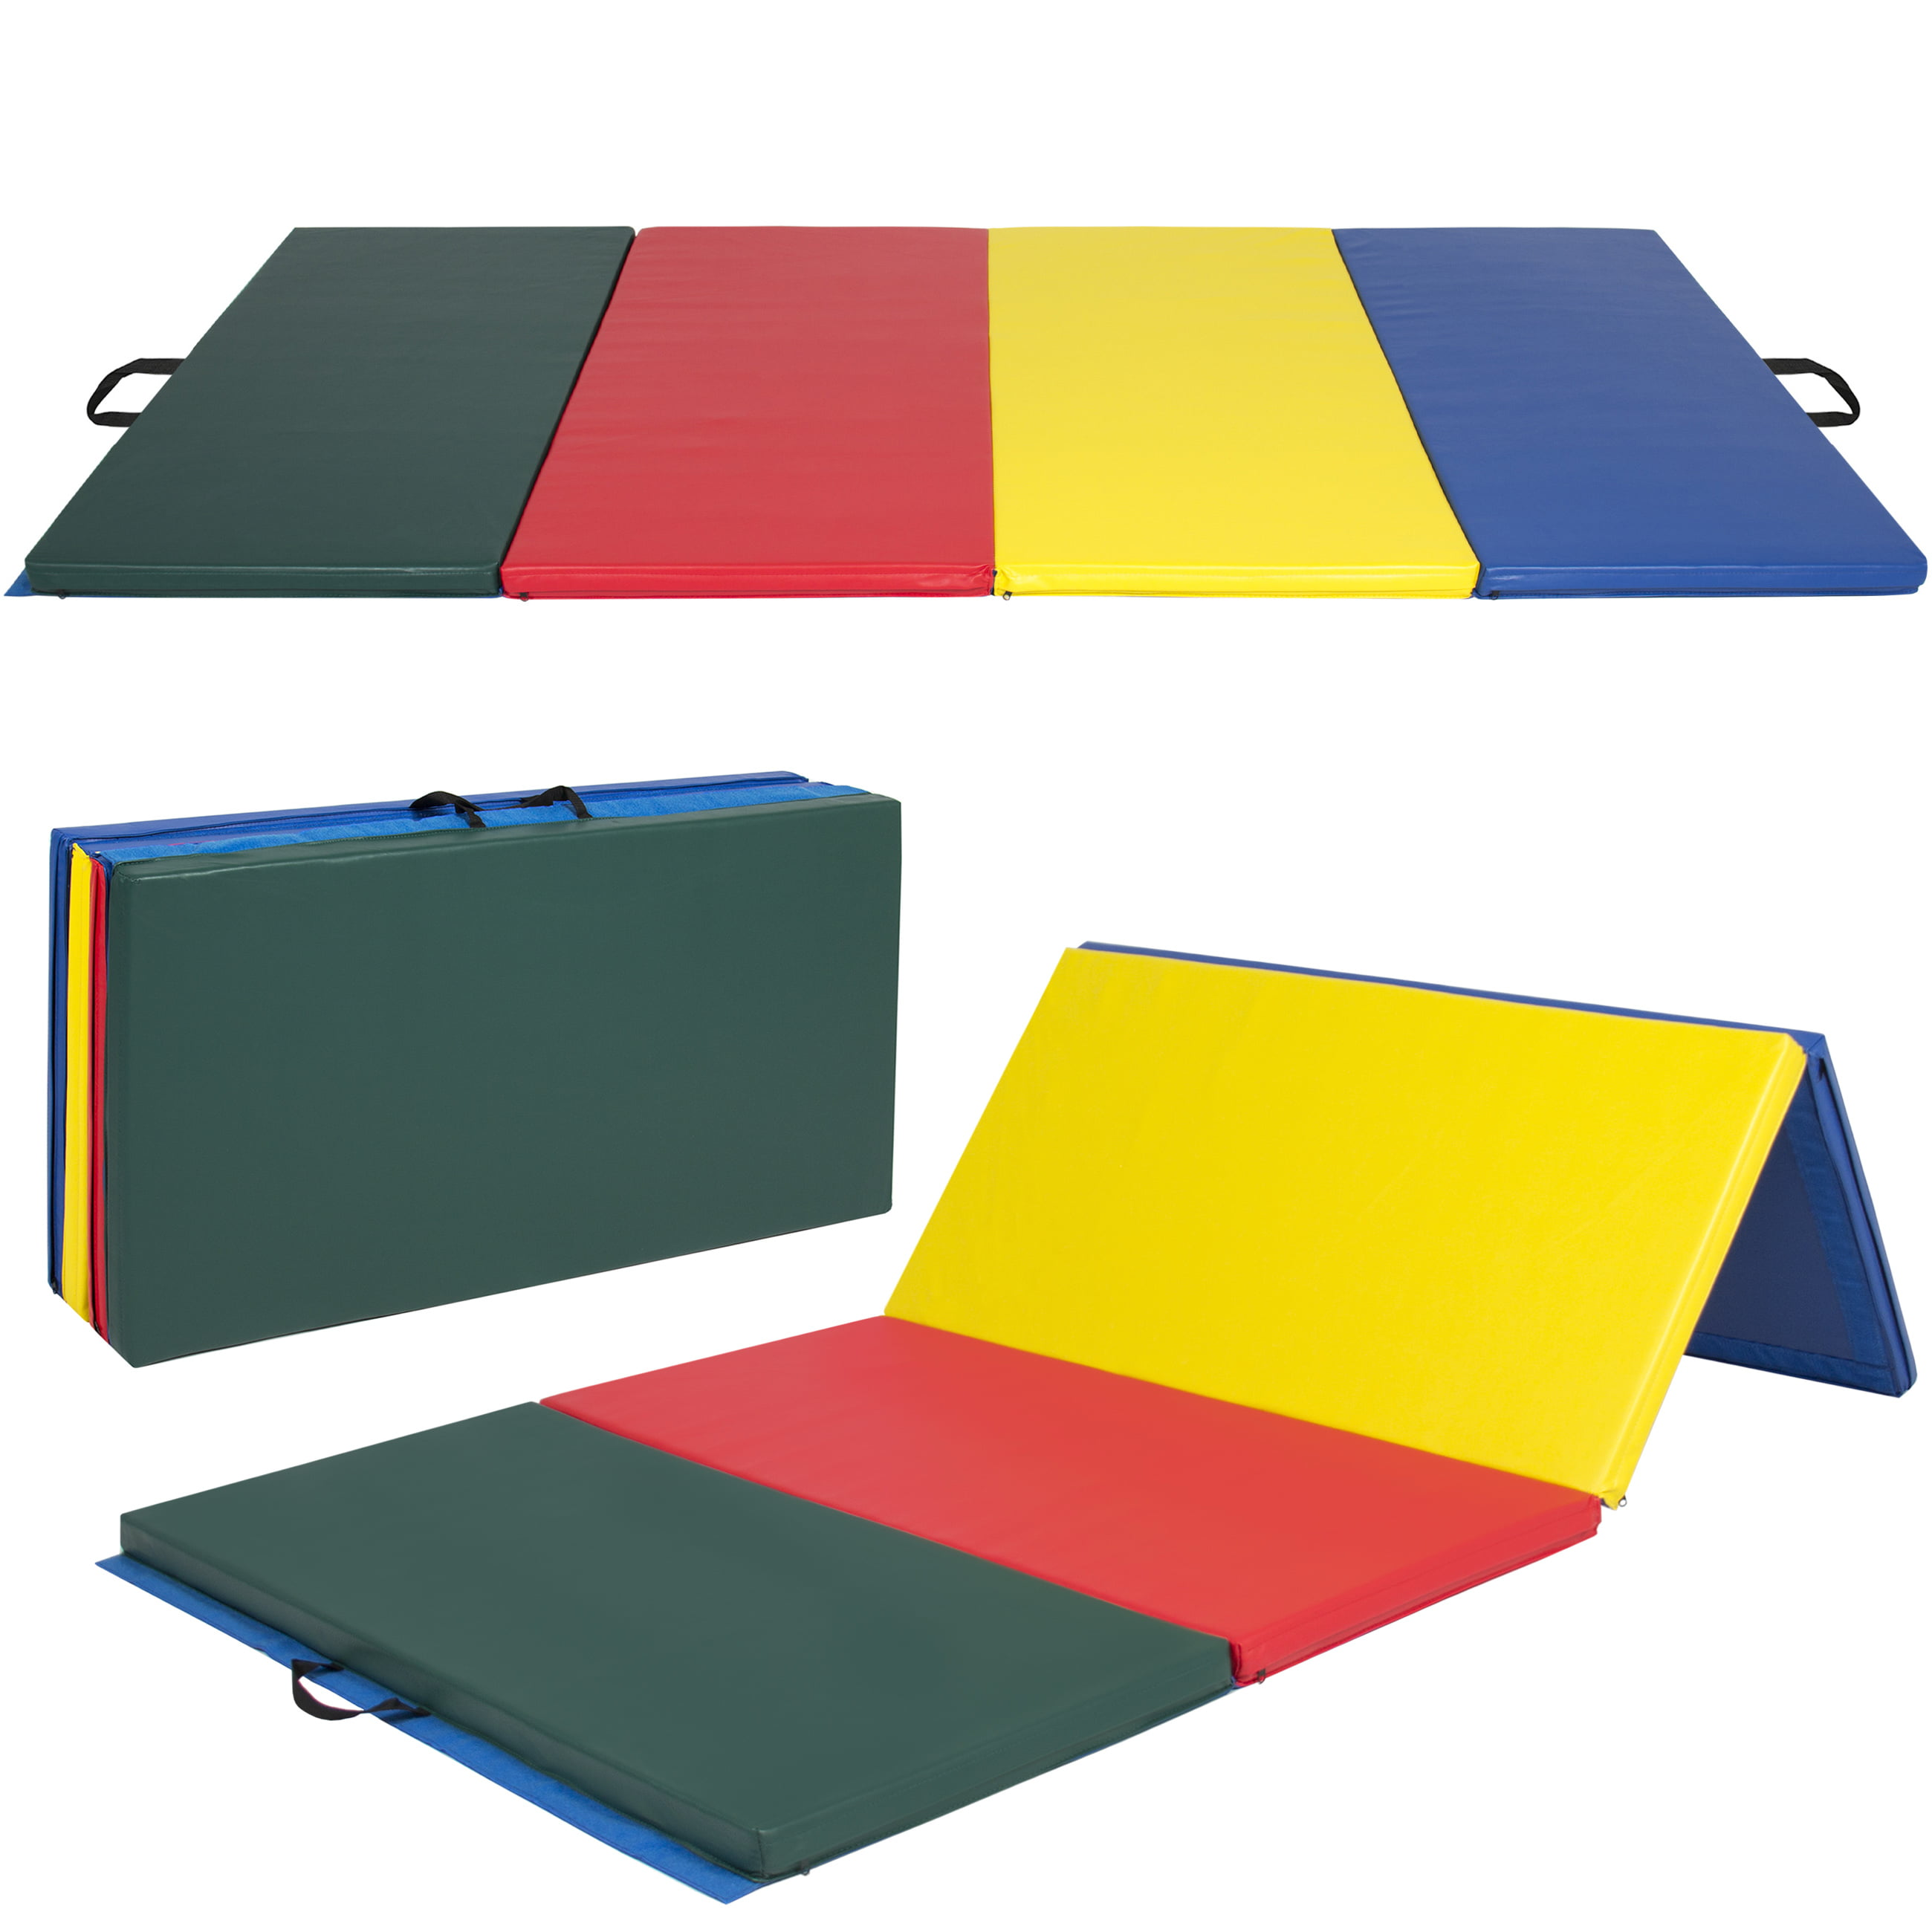 Folding 8' Exercise Gym Mat For Gymnastics, Aerobics, Yoga